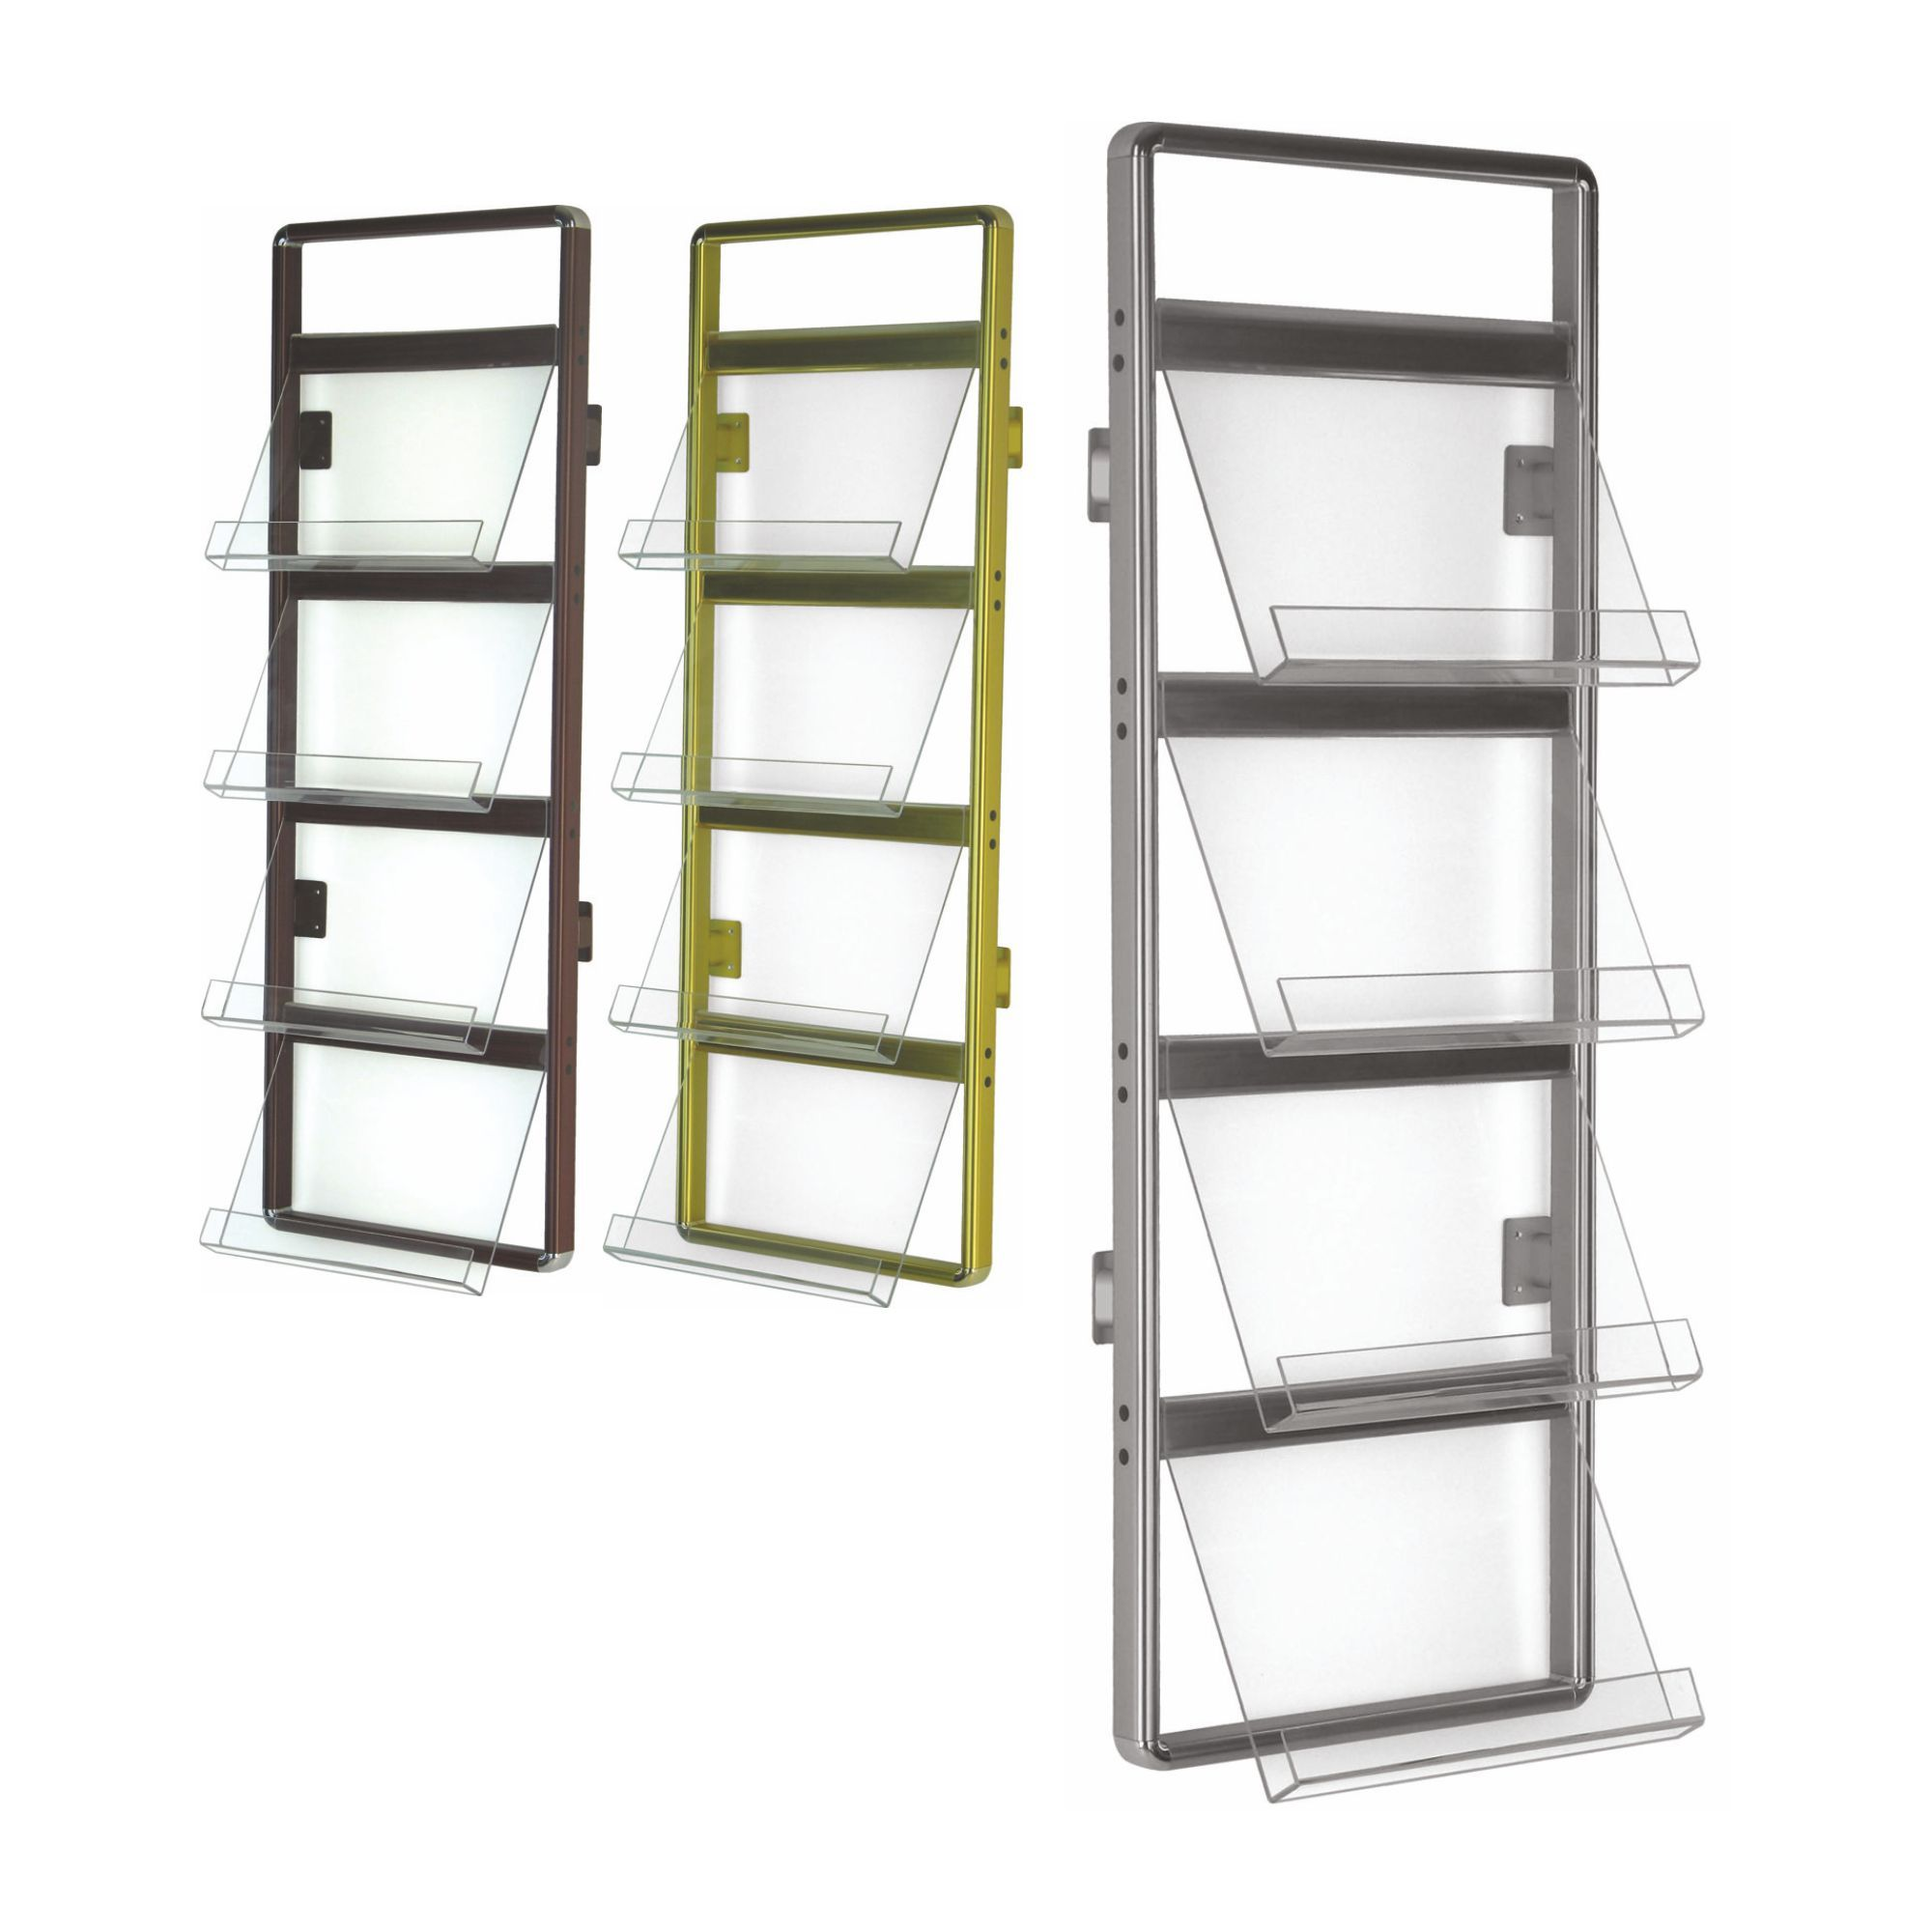 brochure catching zag stand durable is lightweight and literature mount pin display an rack eye making wall stylish attractive zig